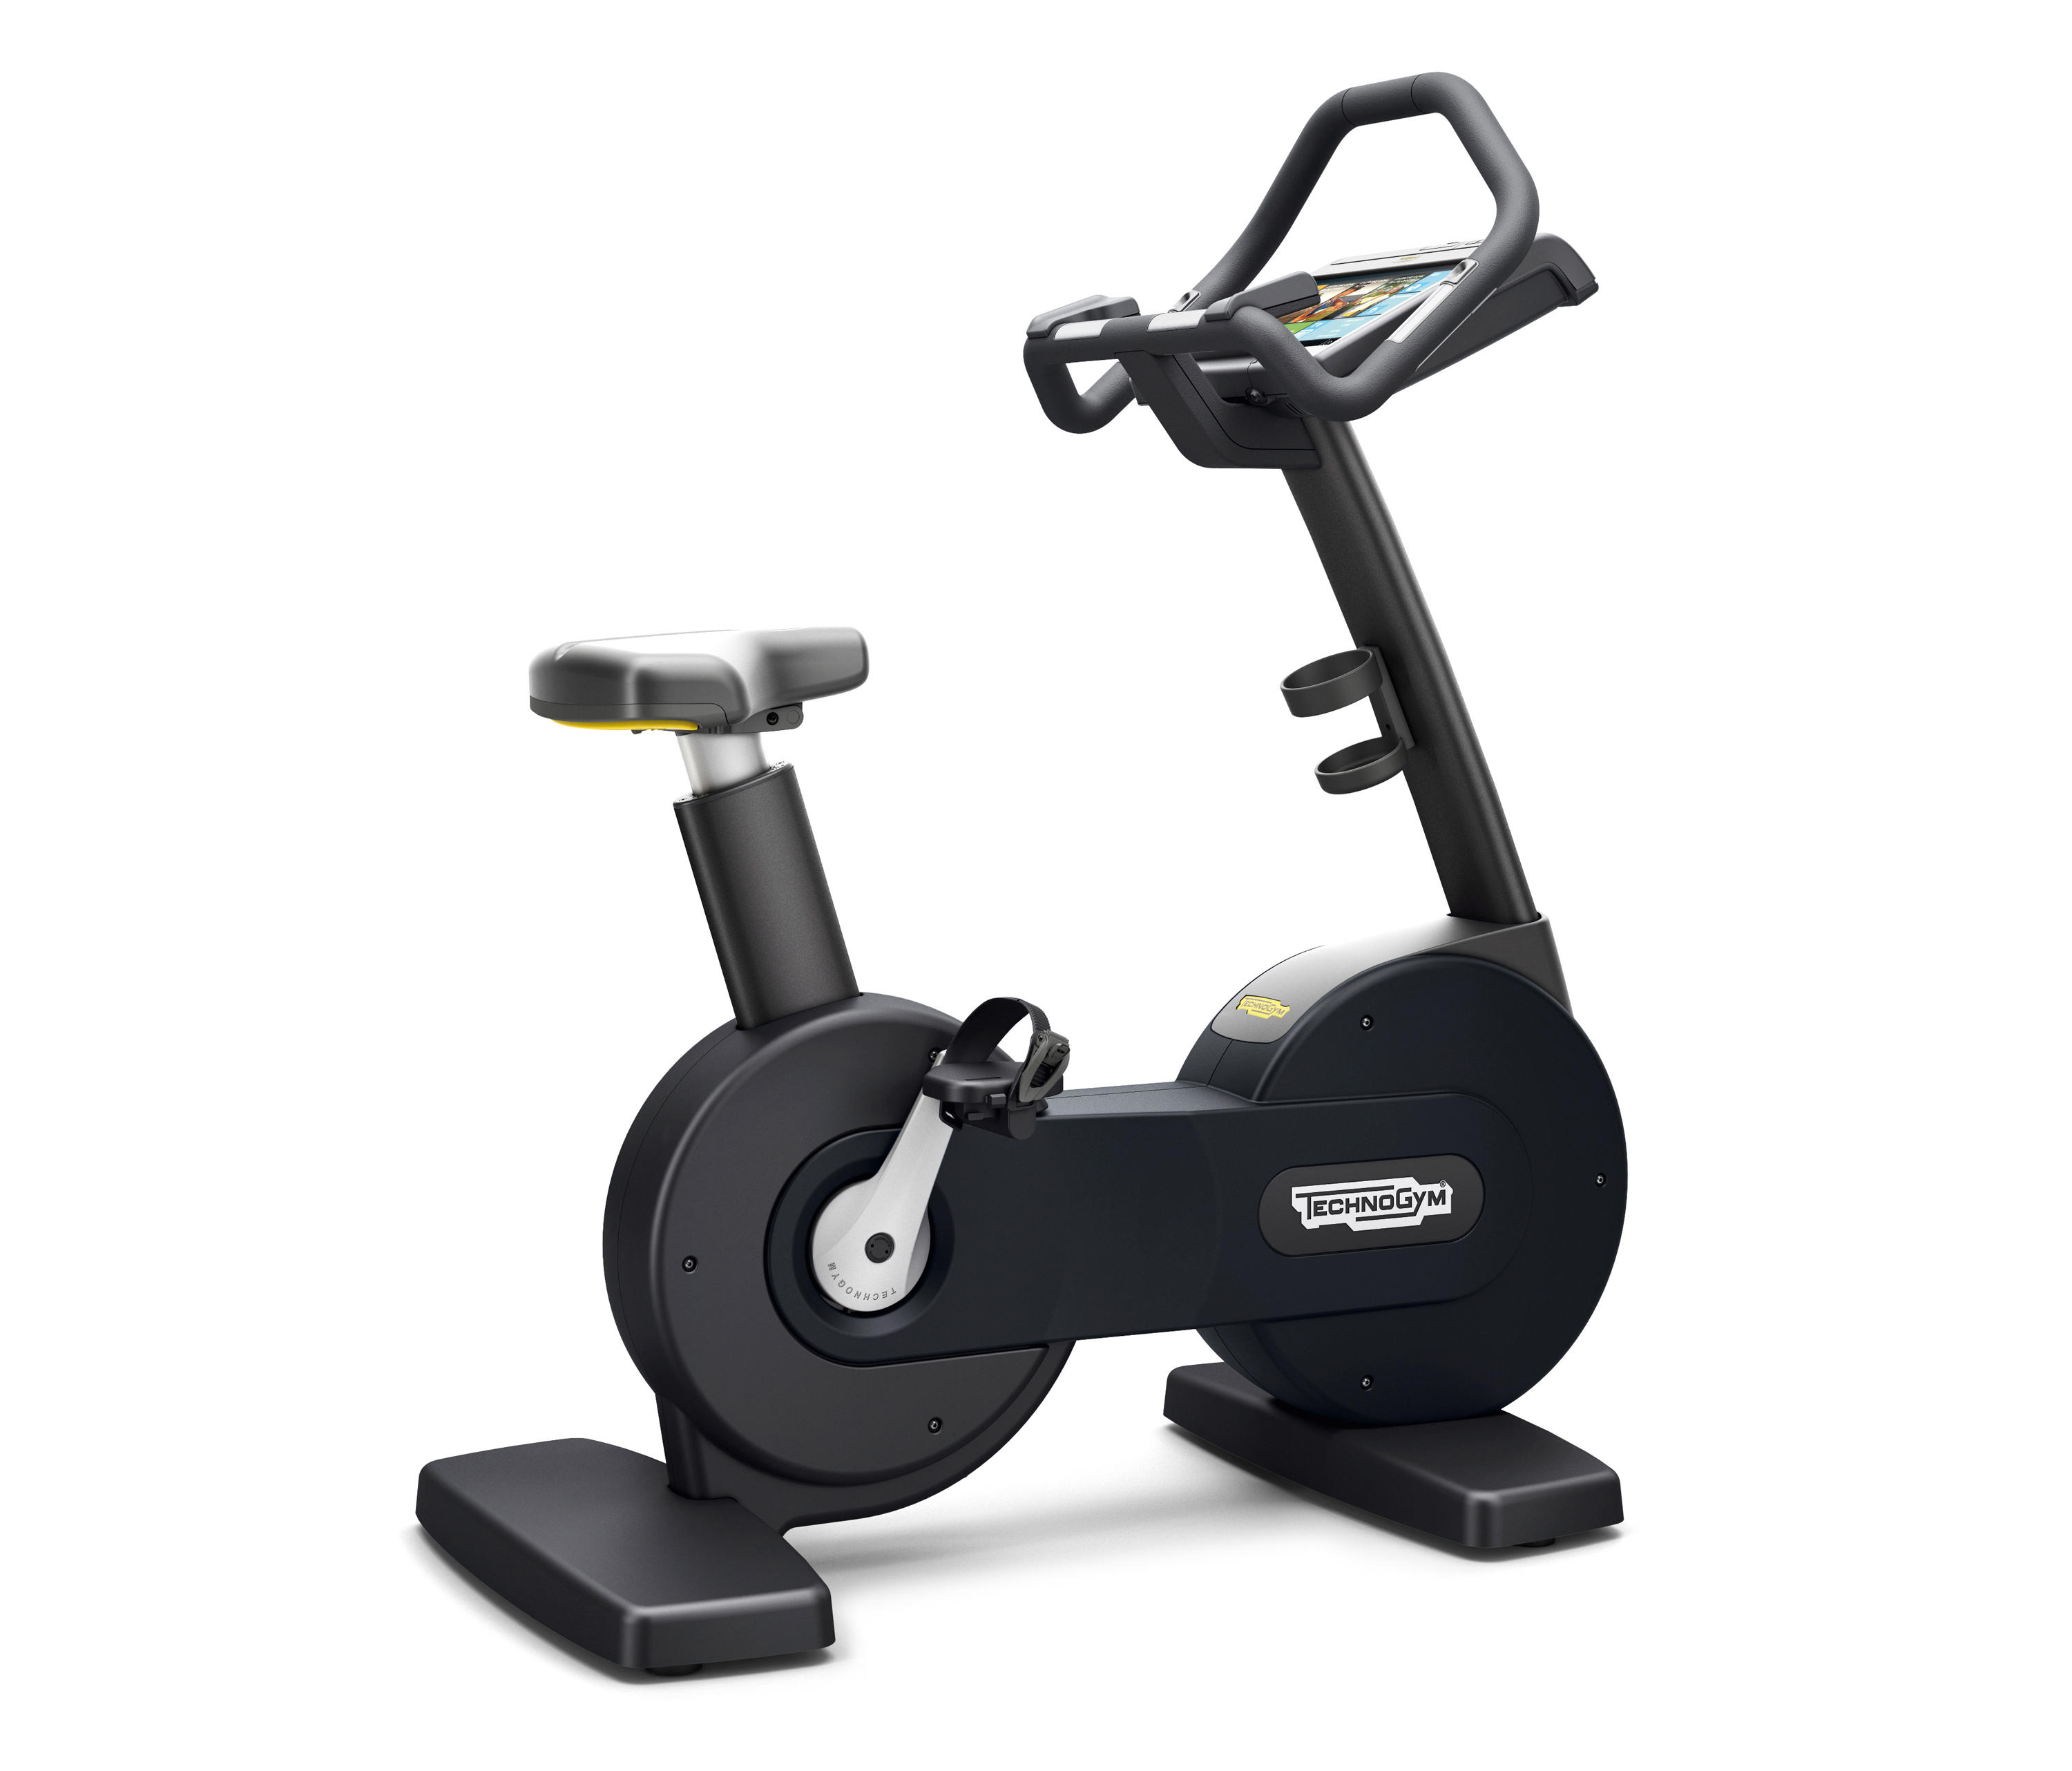 Excite Bike Exercise Bikes From Technogym Architonic